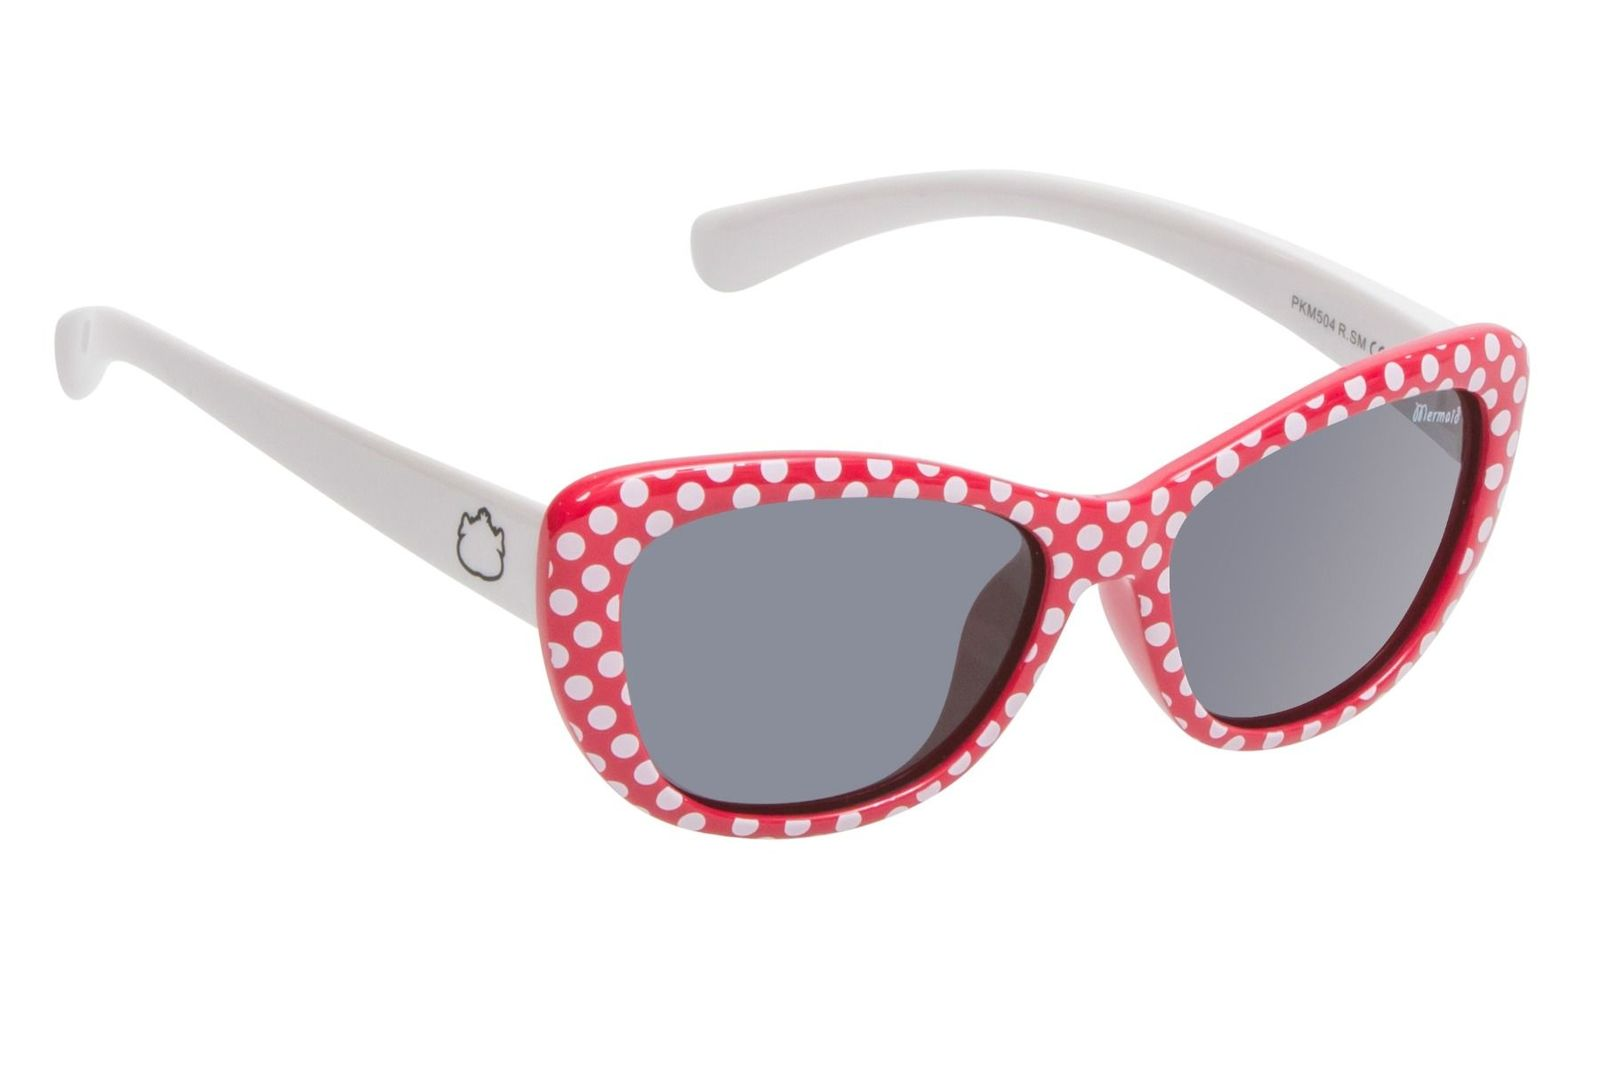 Red Frame With White Dots Smoke Lens Sunglasses